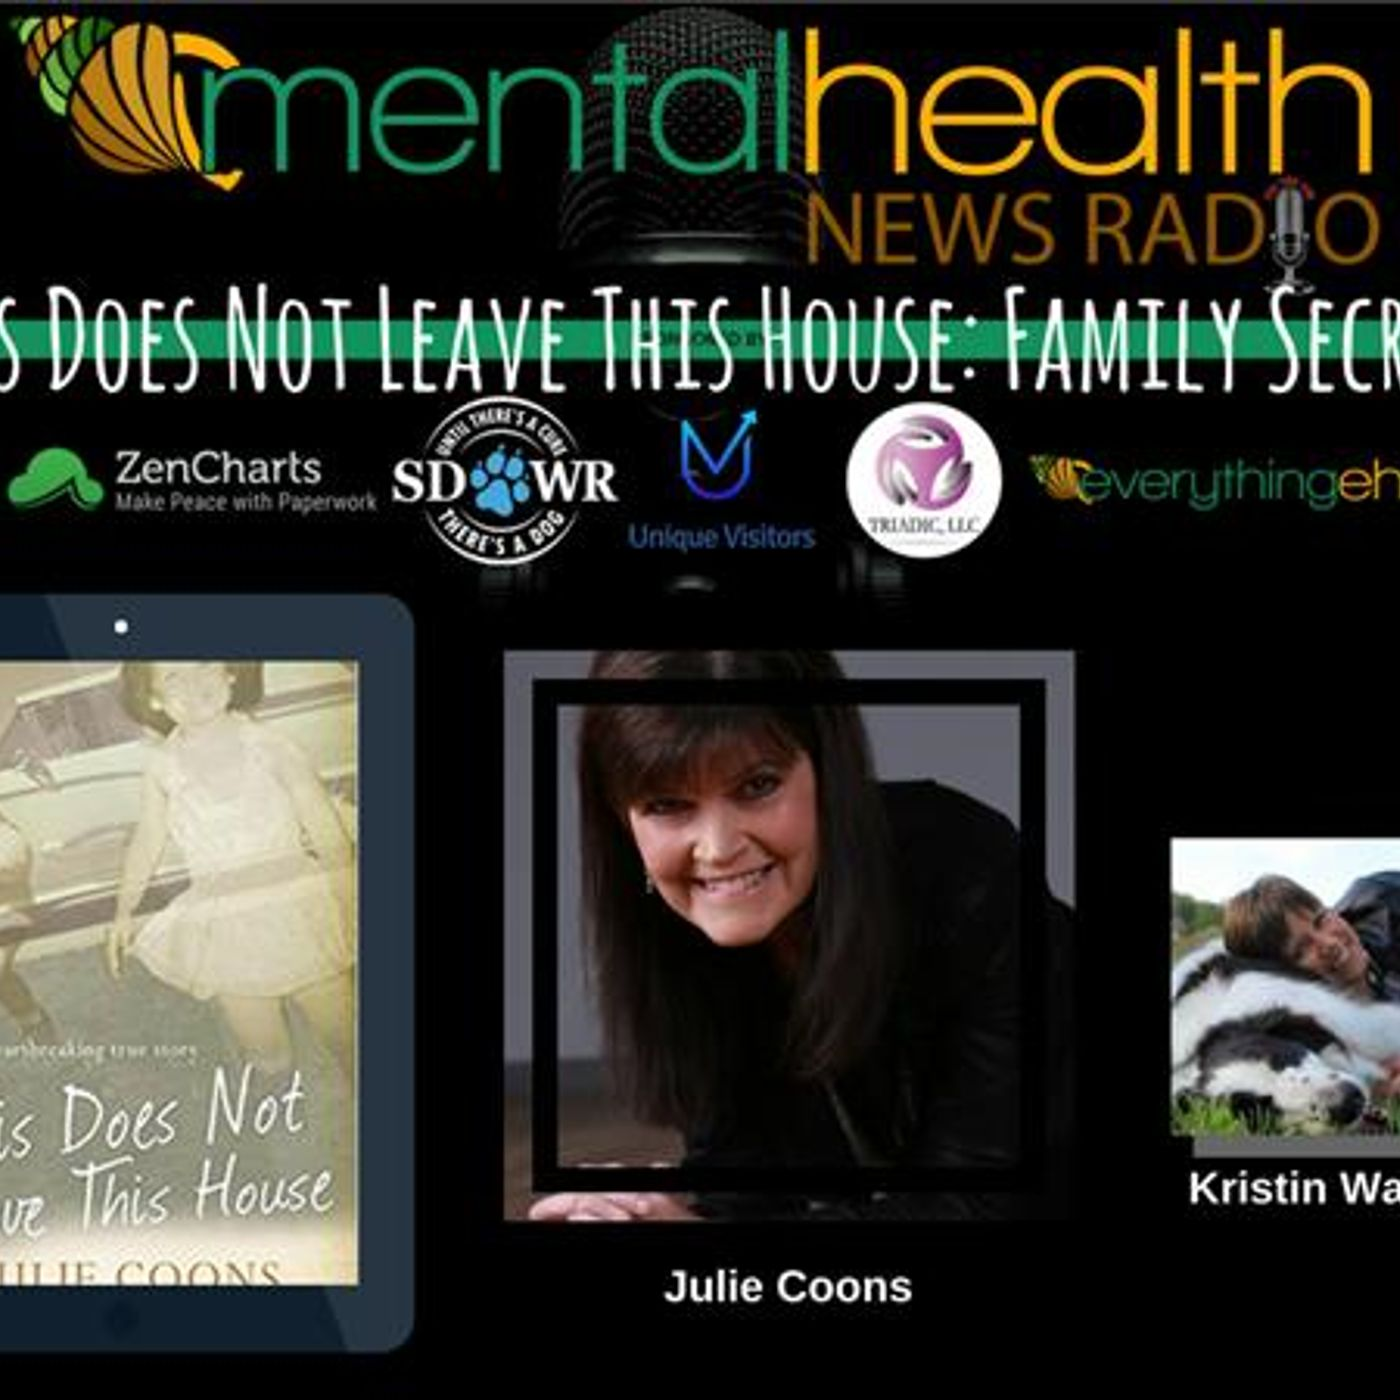 Mental Health News Radio - This Does Not Leave This House: Family Secrets with Julie Coons